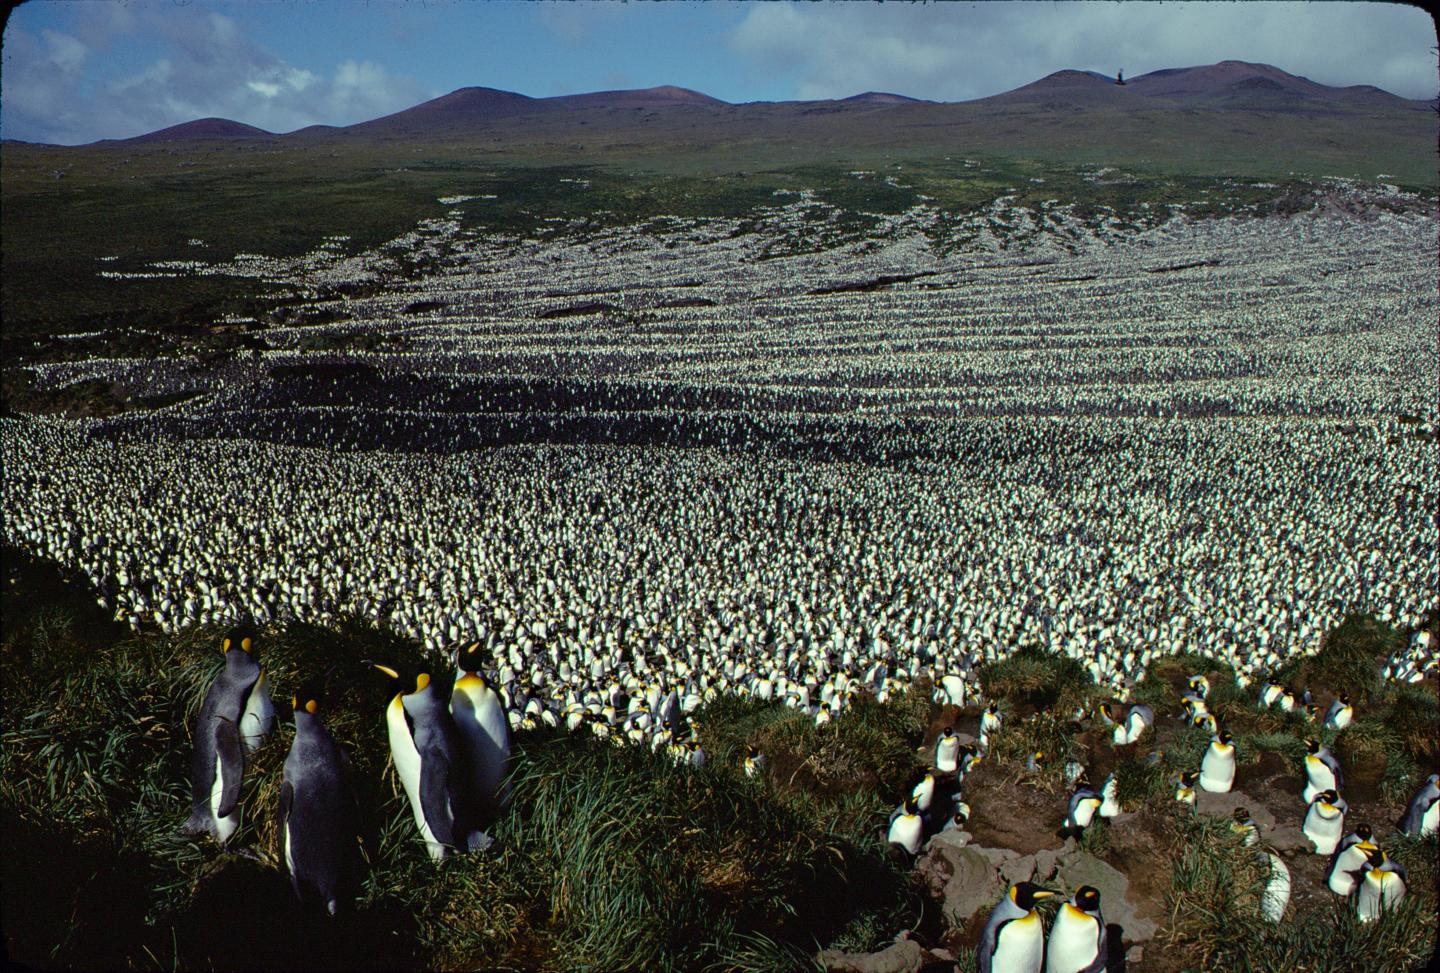 The colony of king penguins on Île aux Cochons in 1892, in the southern Indian Ocean.